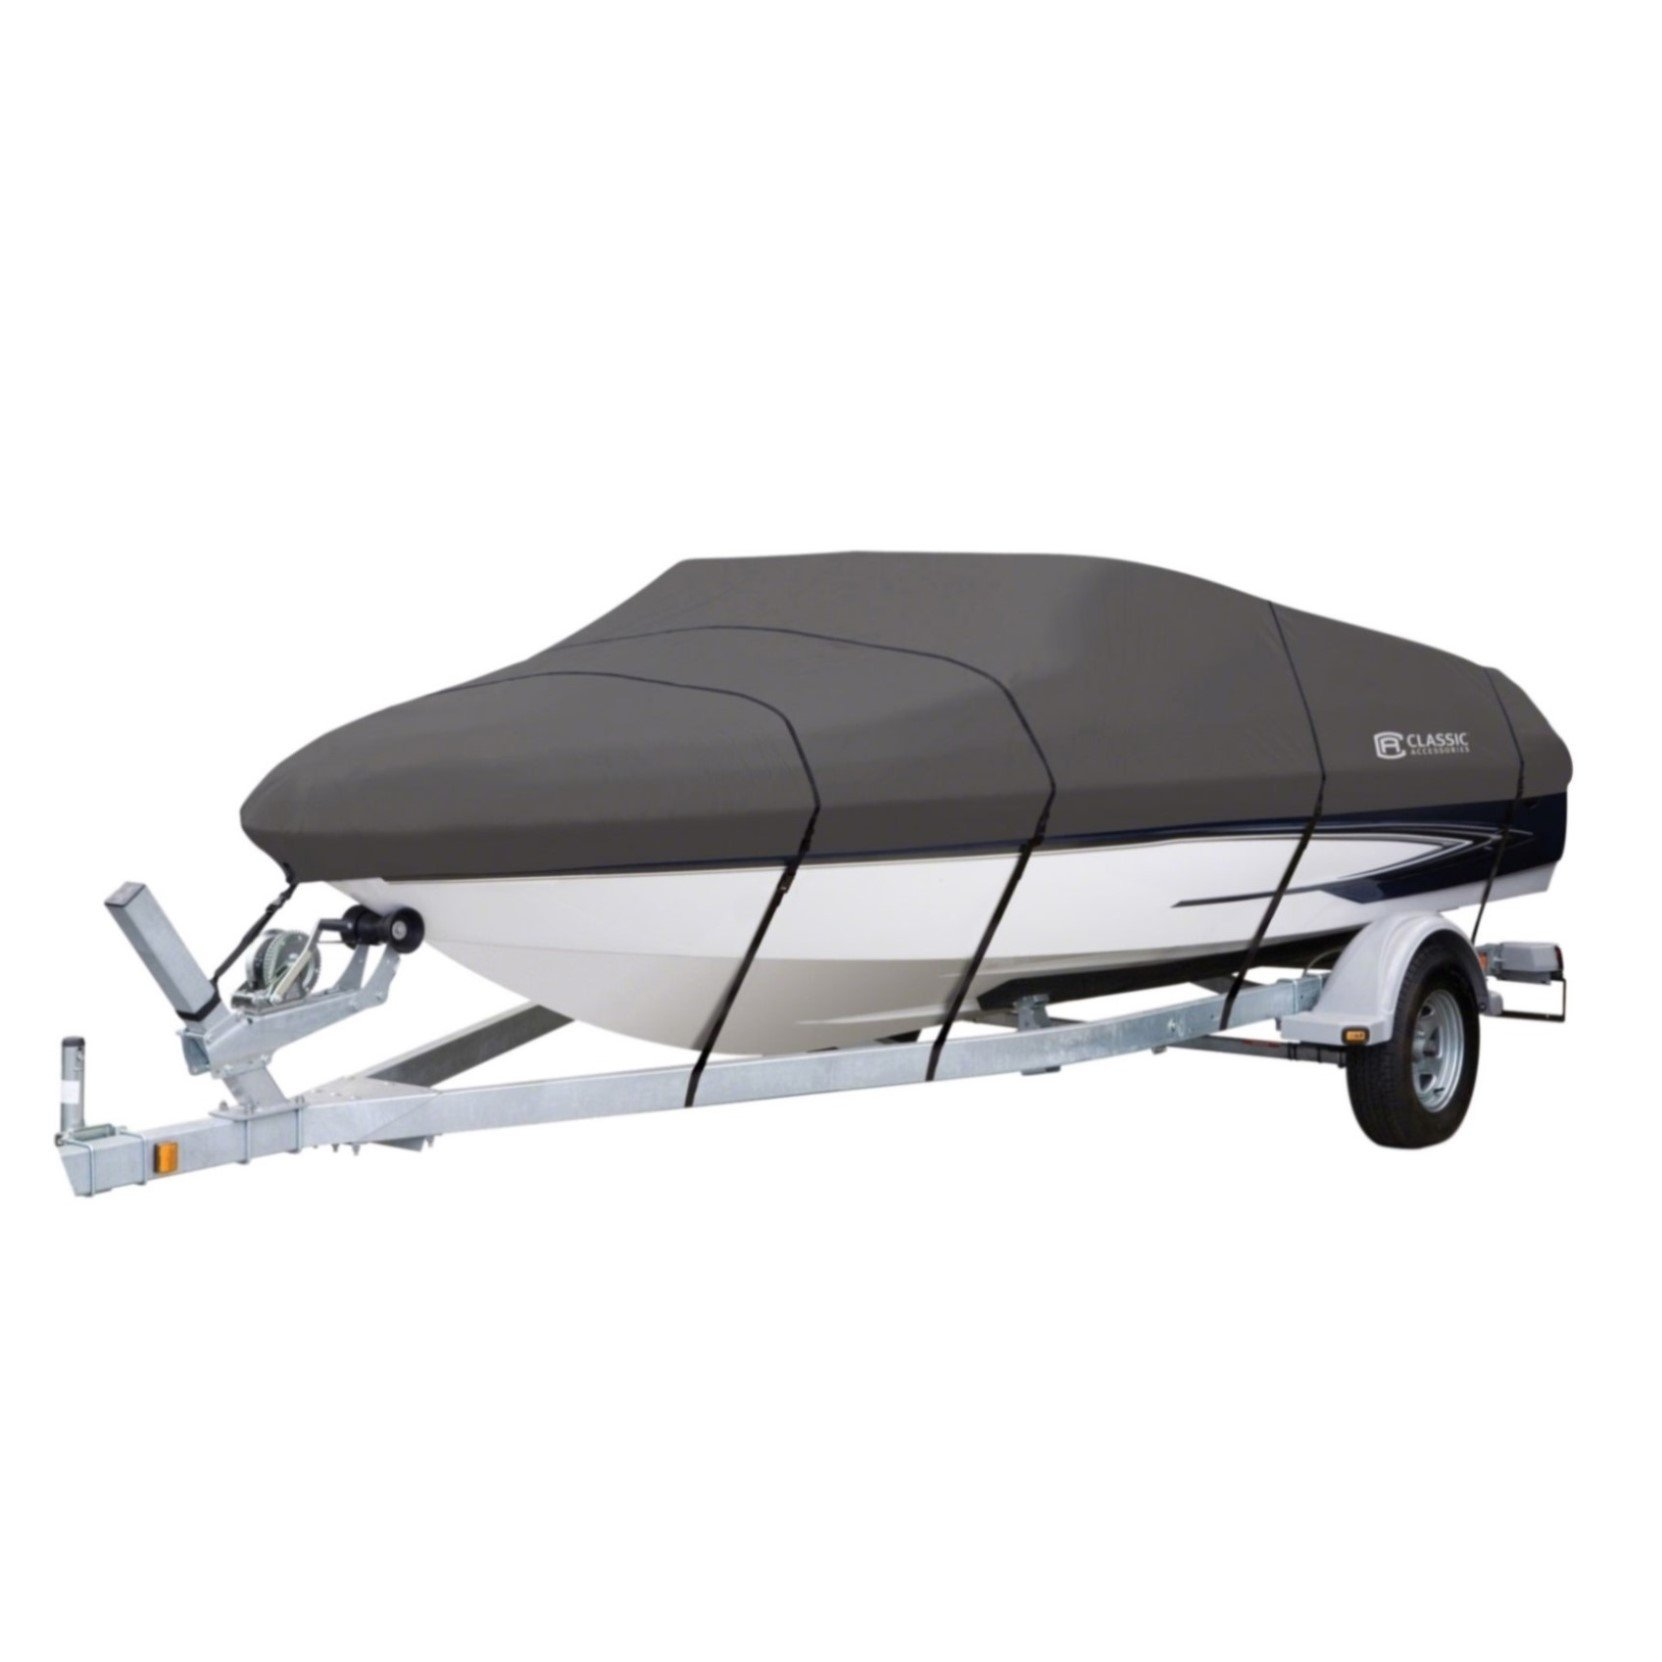 Classic Accessories StormPro Heavy-Duty Boat Cover With Support Pole For V-Hull Runabouts, 20' - 22' L Up to 106'' W